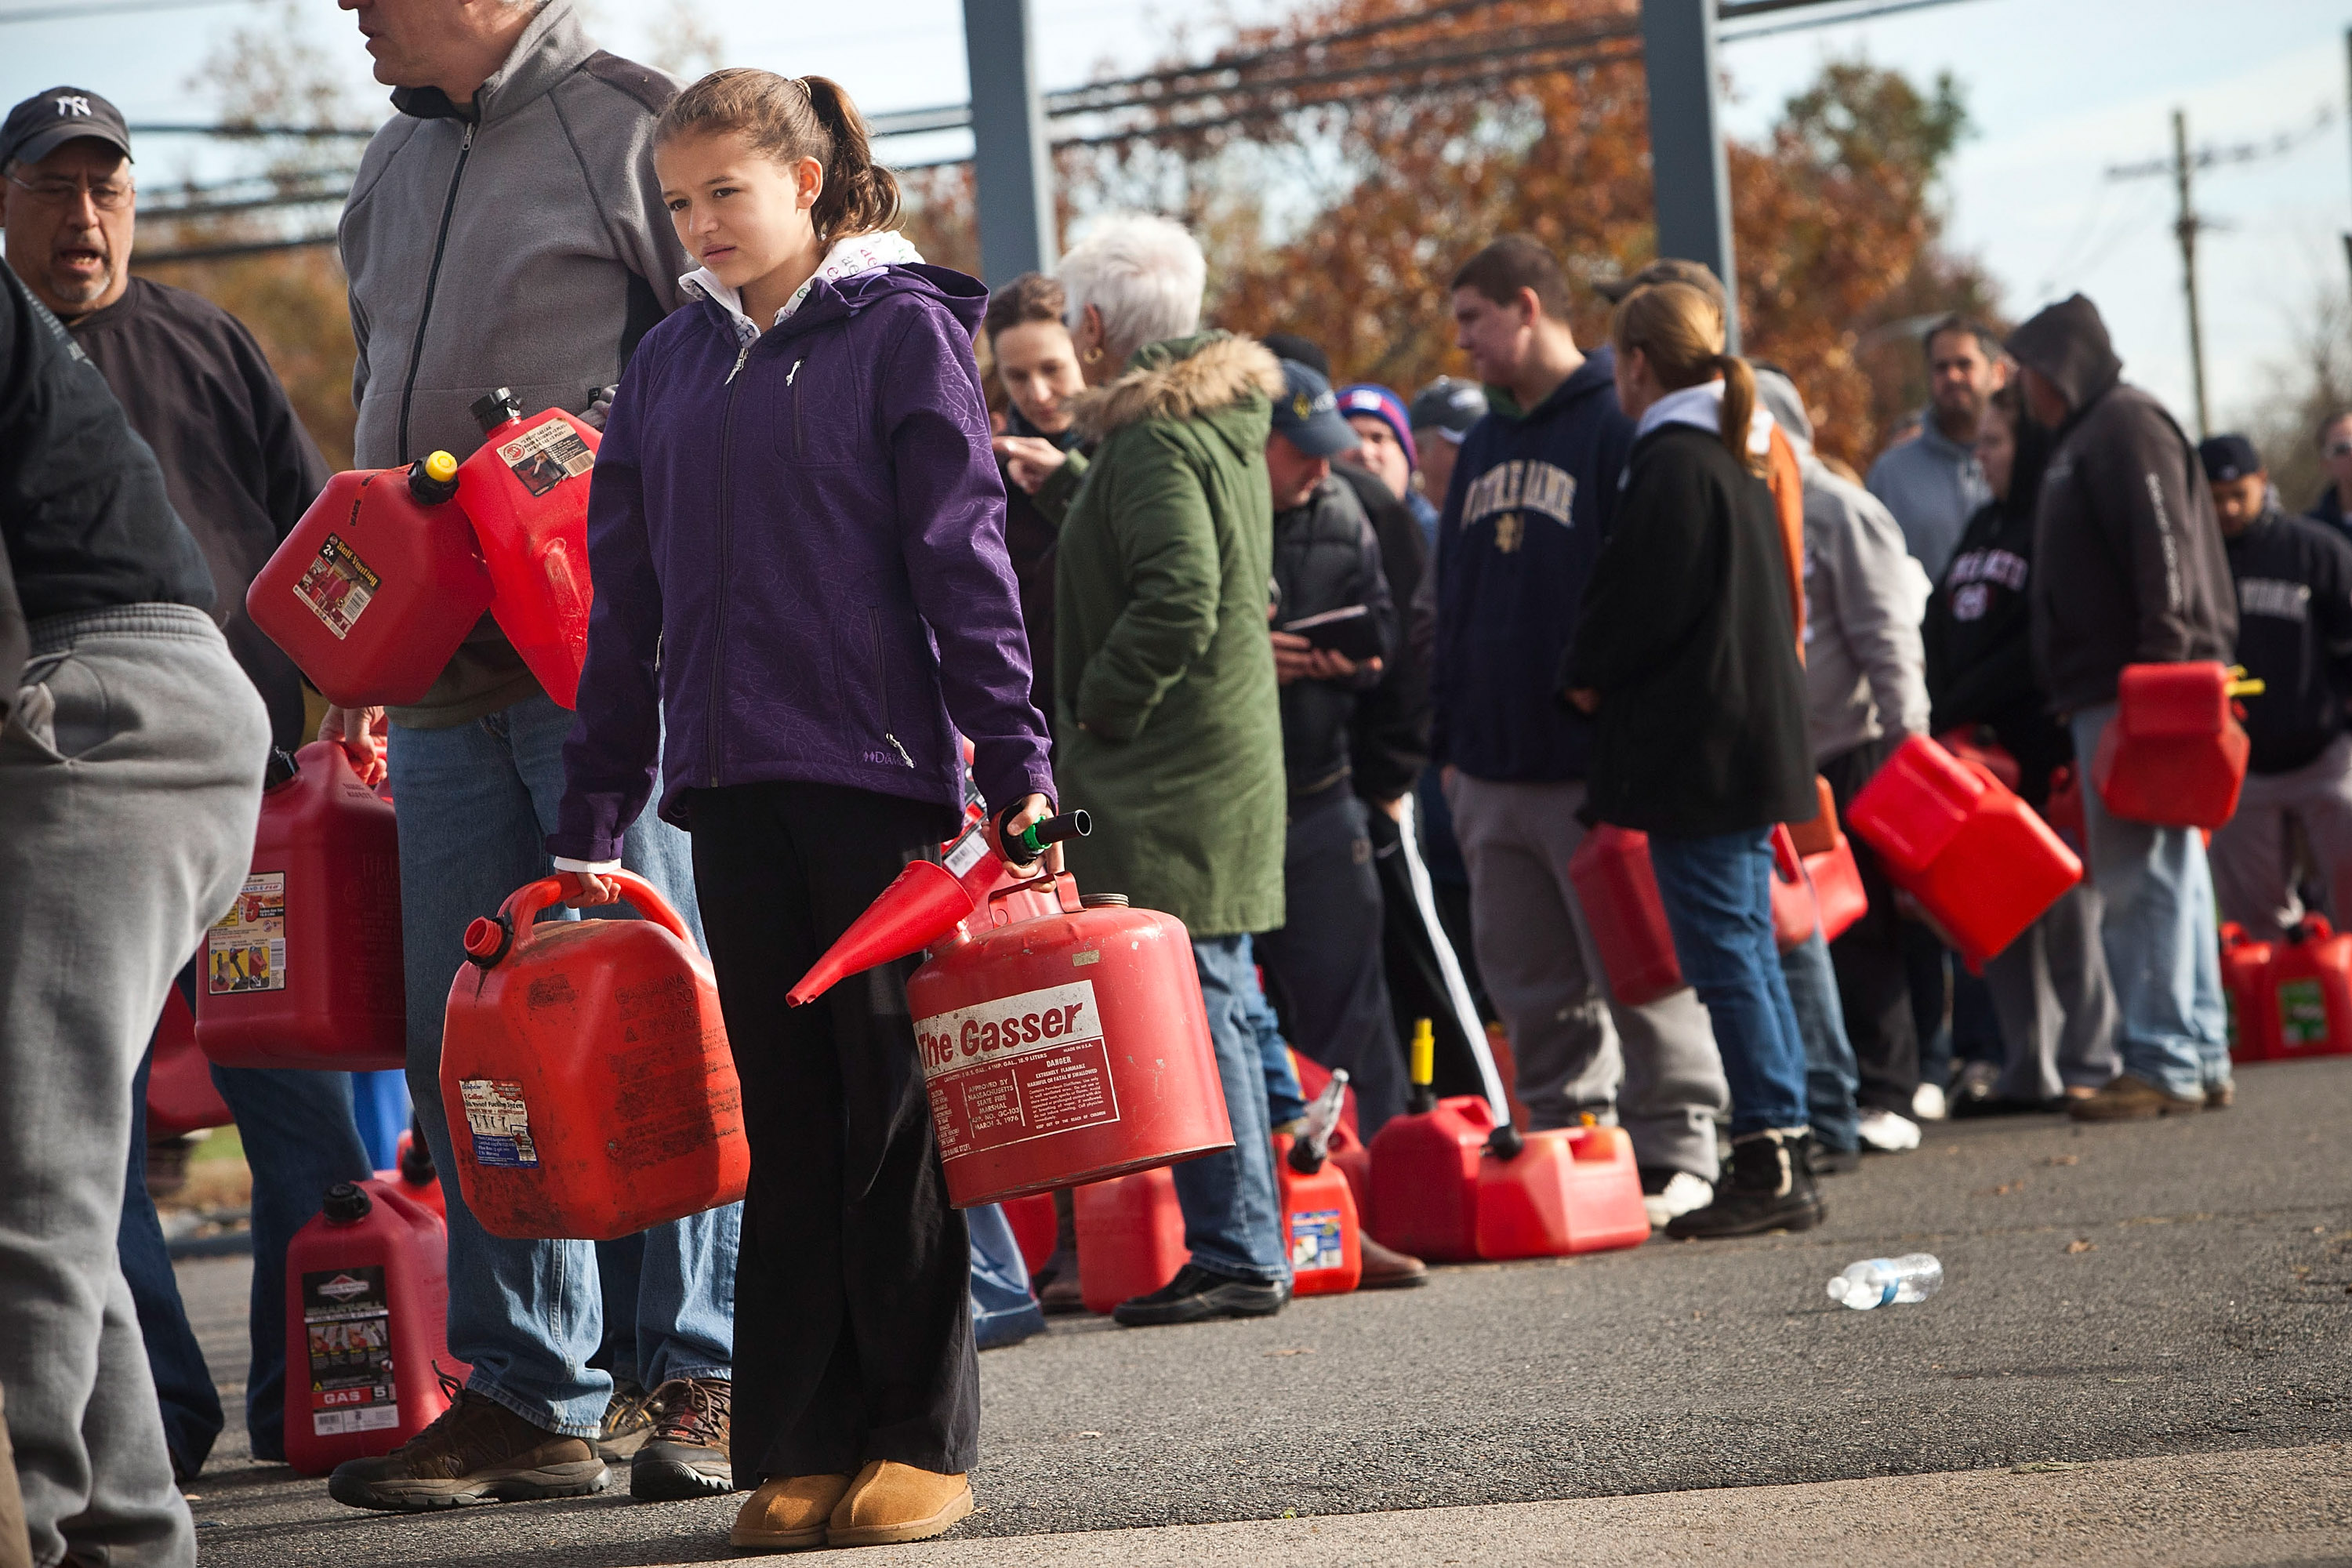 A girl holds jerry cans while waiting in line at a gas station in Hazlet township, N.J., Nov. 1, 2012.